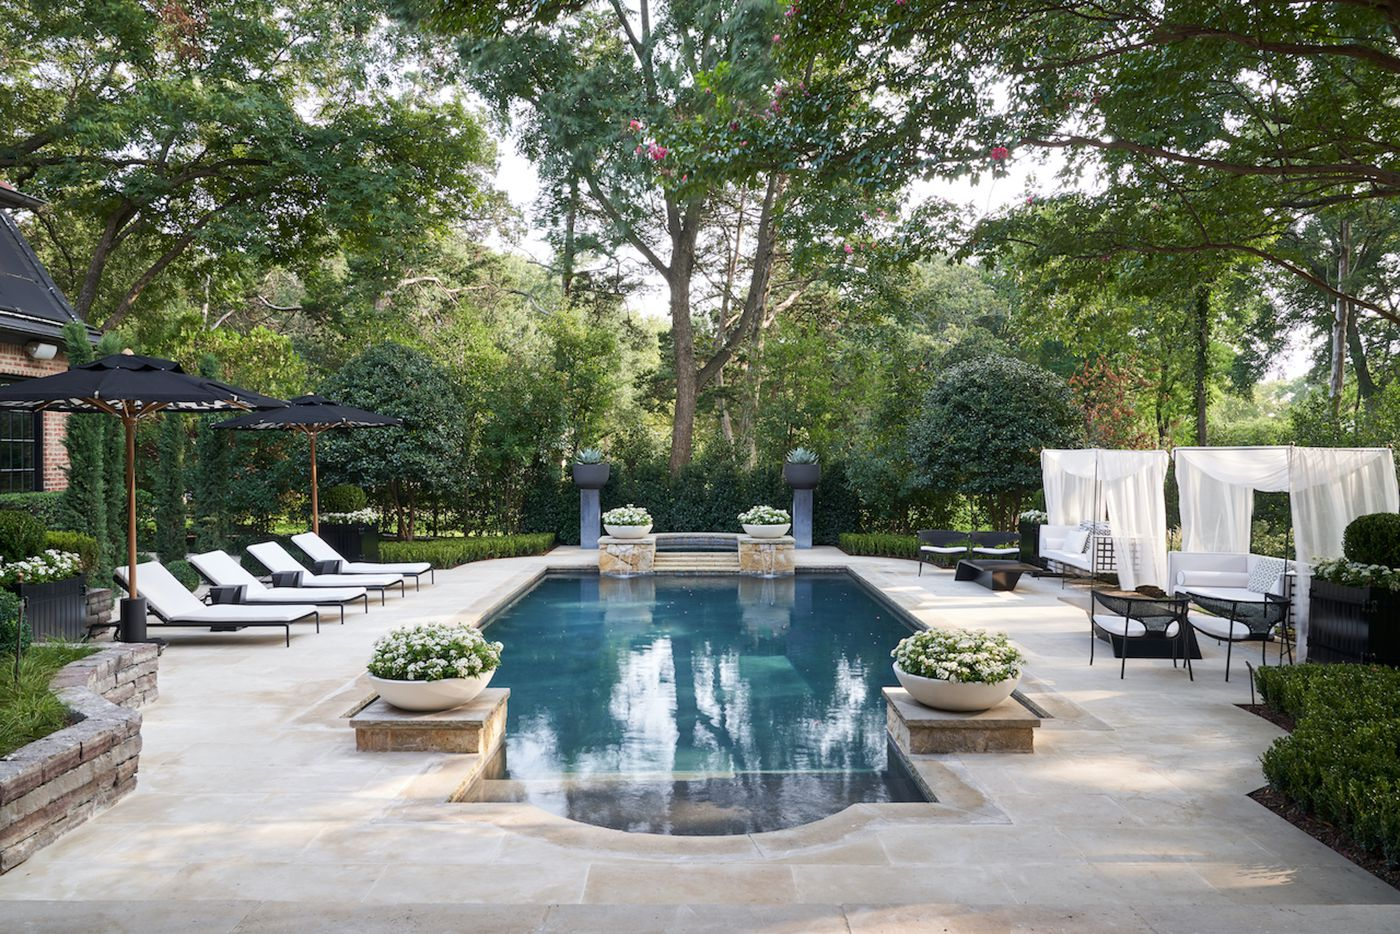 The backyard at the Kips Bay Decorator Show House Dallas. This space was designed by Melissa Gerstle Design.